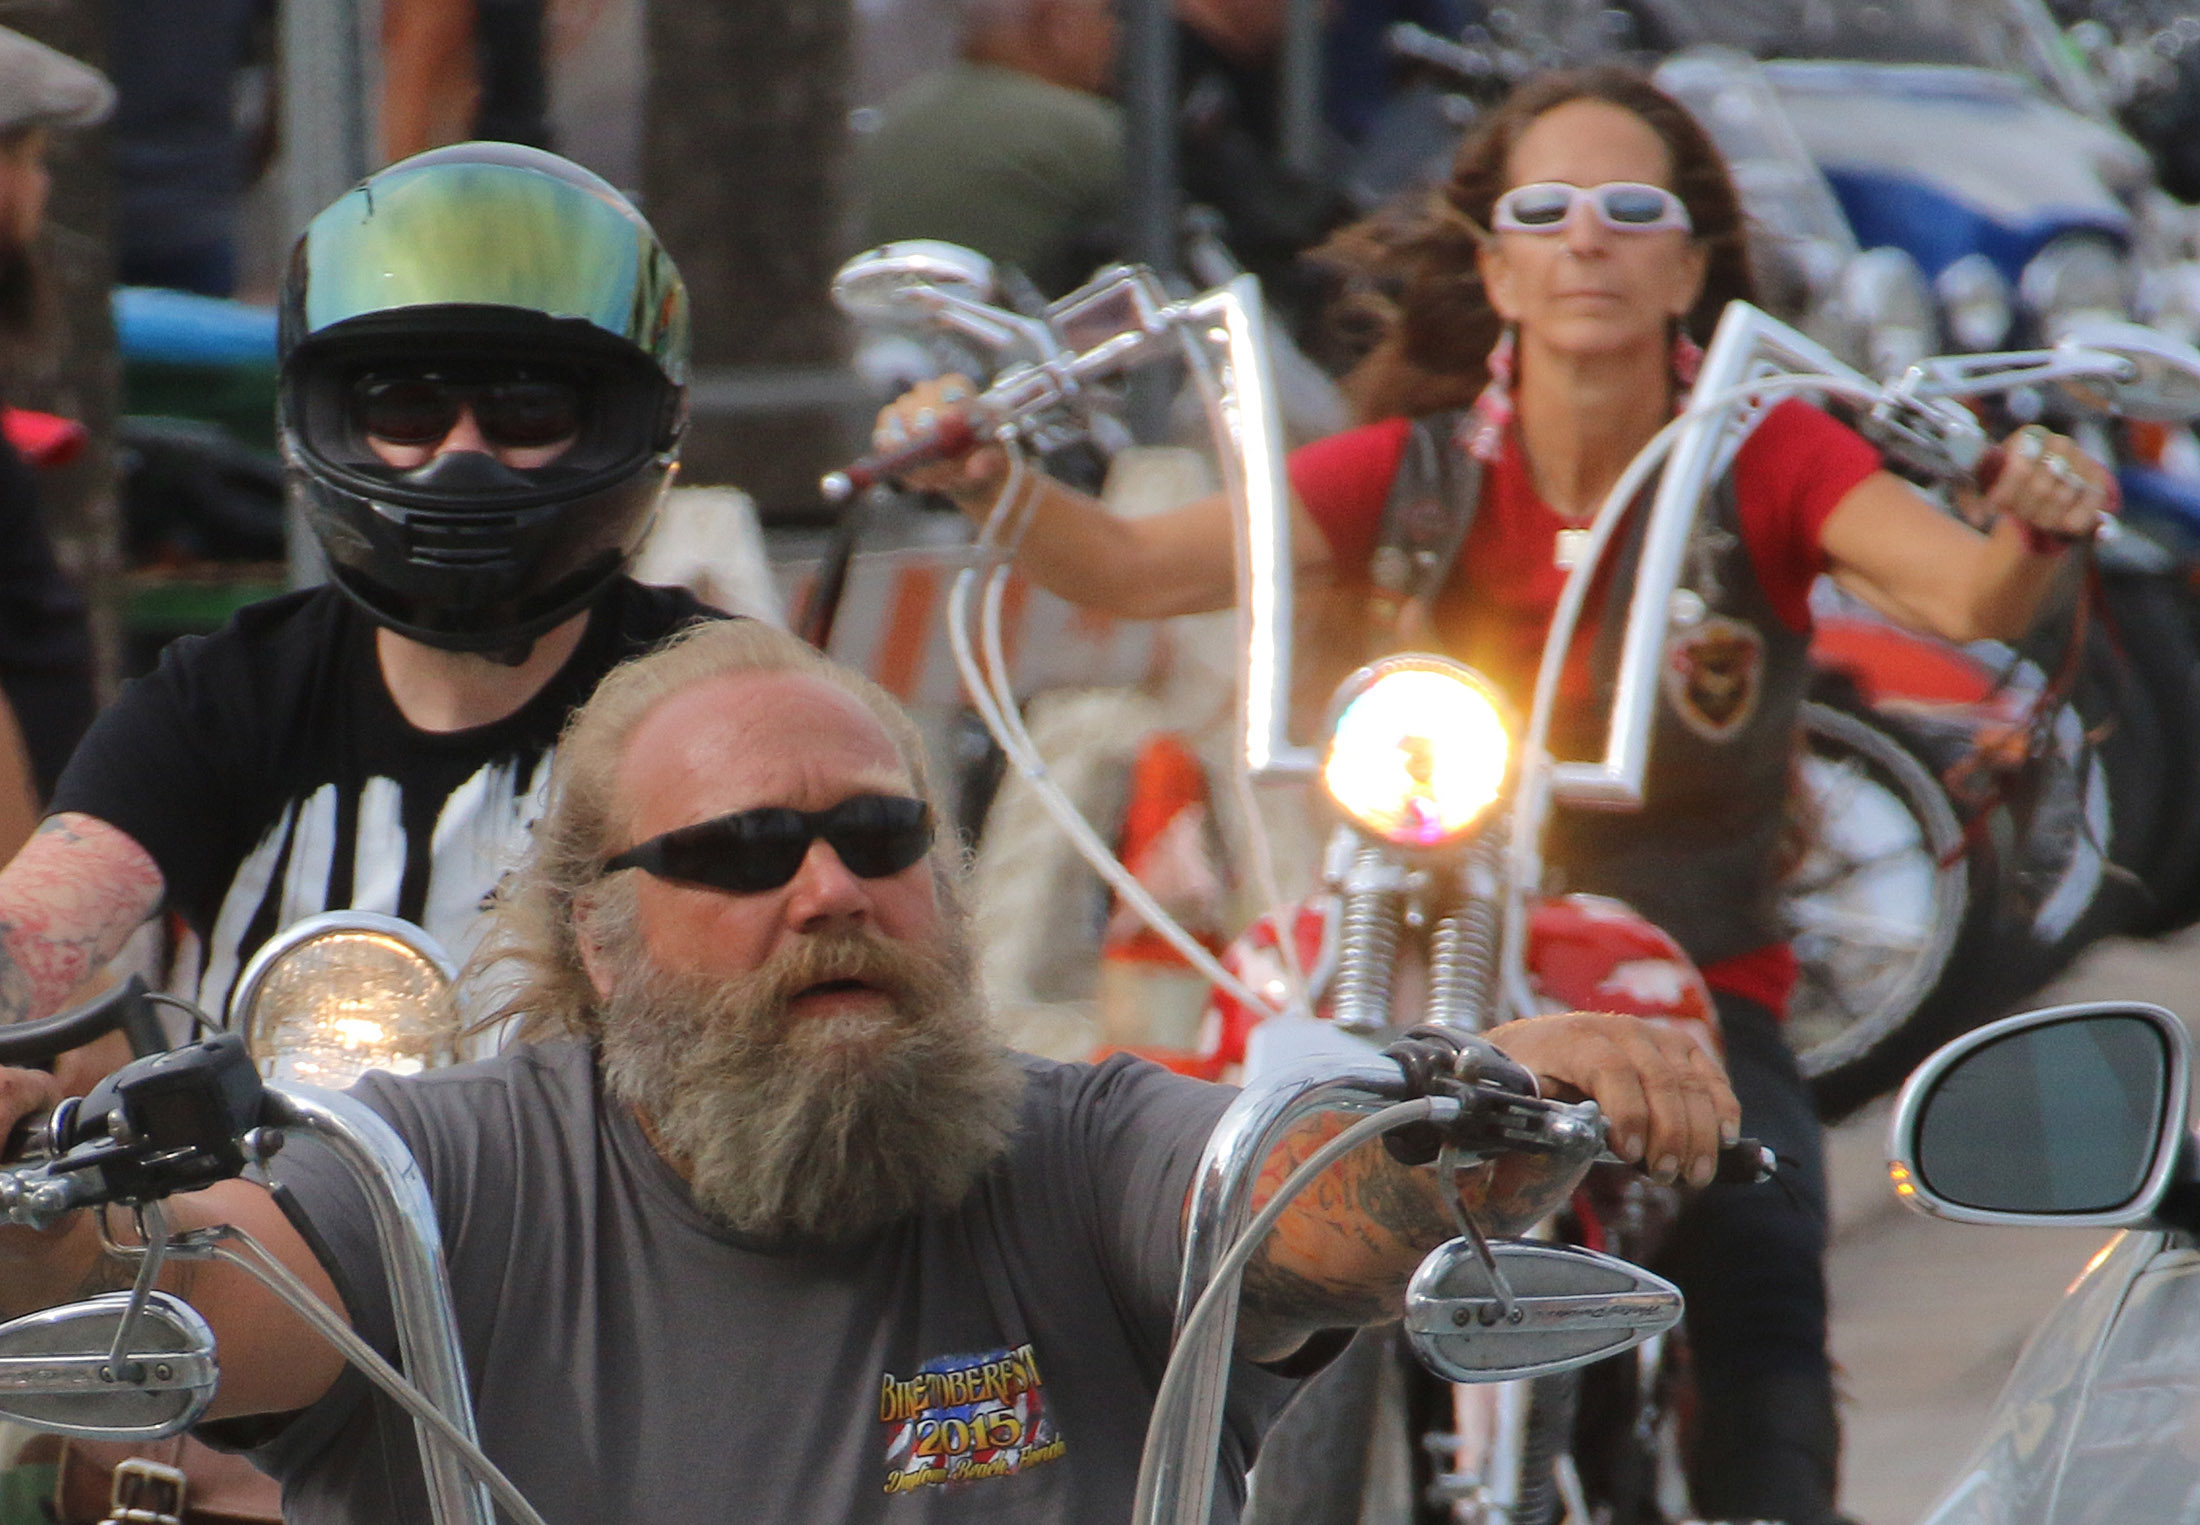 Bikers of all sizes, shapes, and genders were on the motorcycles as Biketoberfest rolls into day 2 in Daytona Beach Friday  October 16, 2015. News-Journal/JIM TILLER